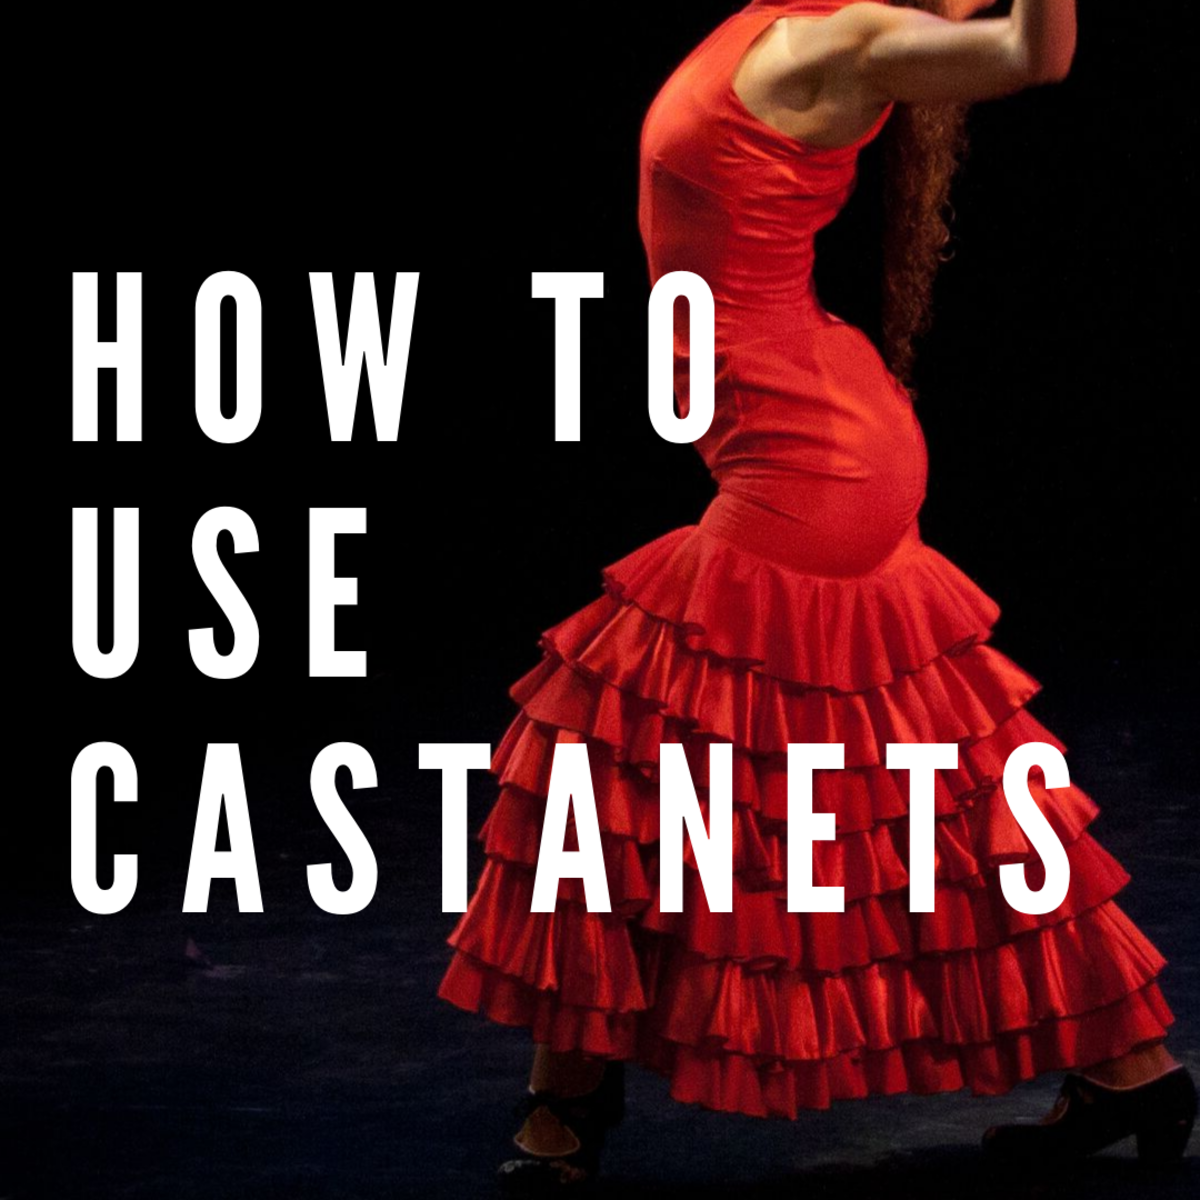 Learn all about castanets, including how to choose the right set and how to play them.